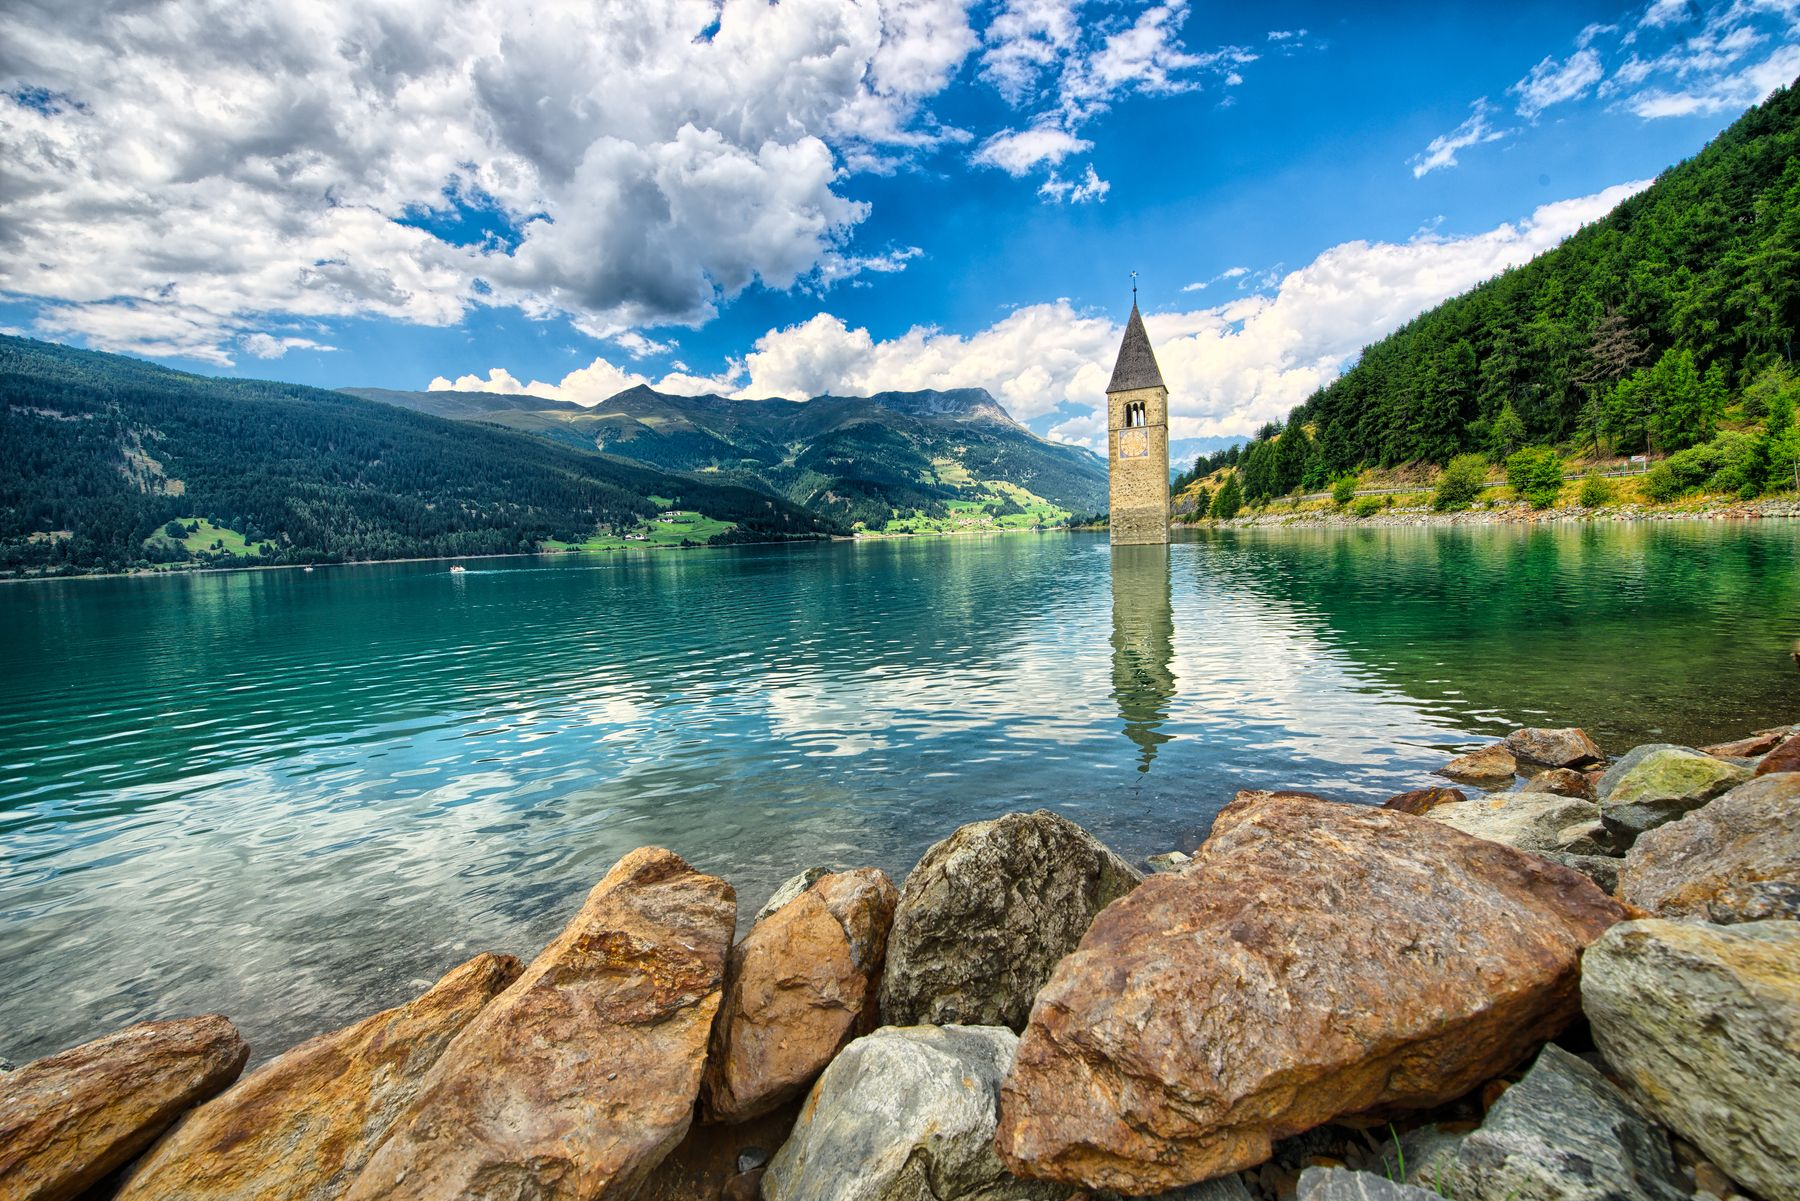 A church bell tower peeks out of the glacial lake in Alto Adige, Italy.